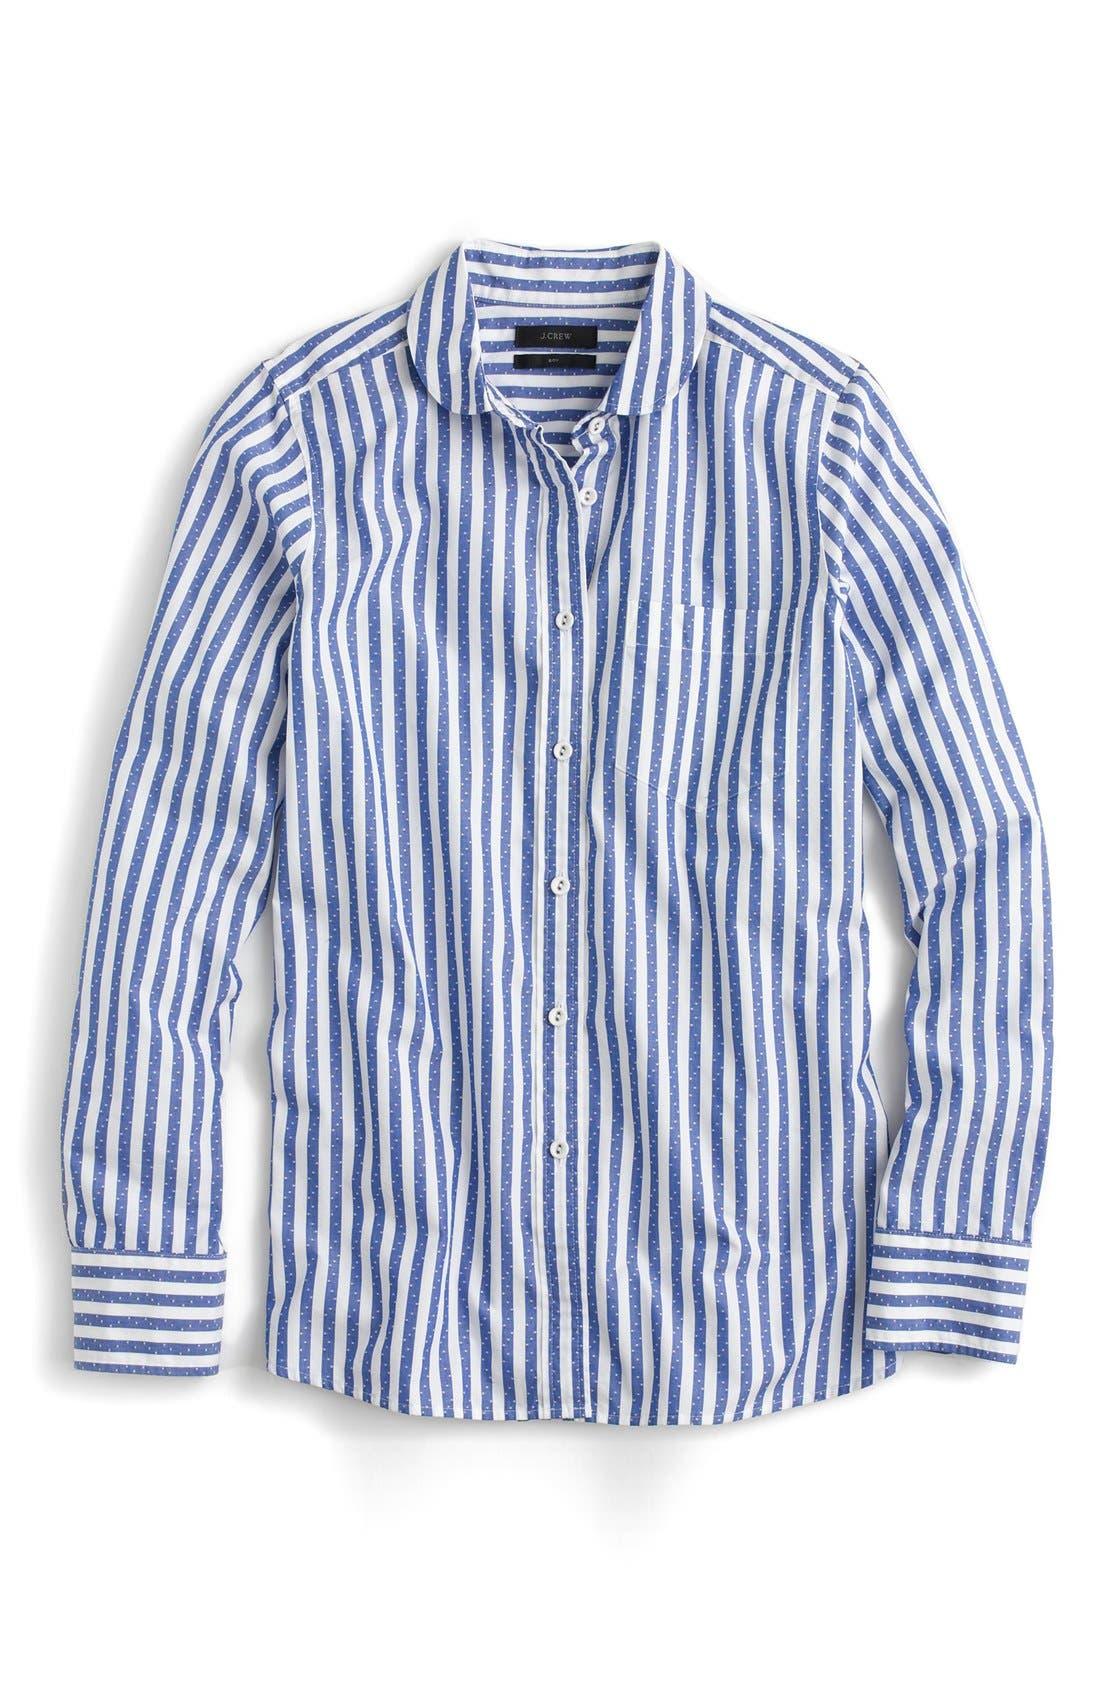 Alternate Image 4  - J.Crew Club Collar Jacquard Stripe Boy Shirt (Regular & Petite)